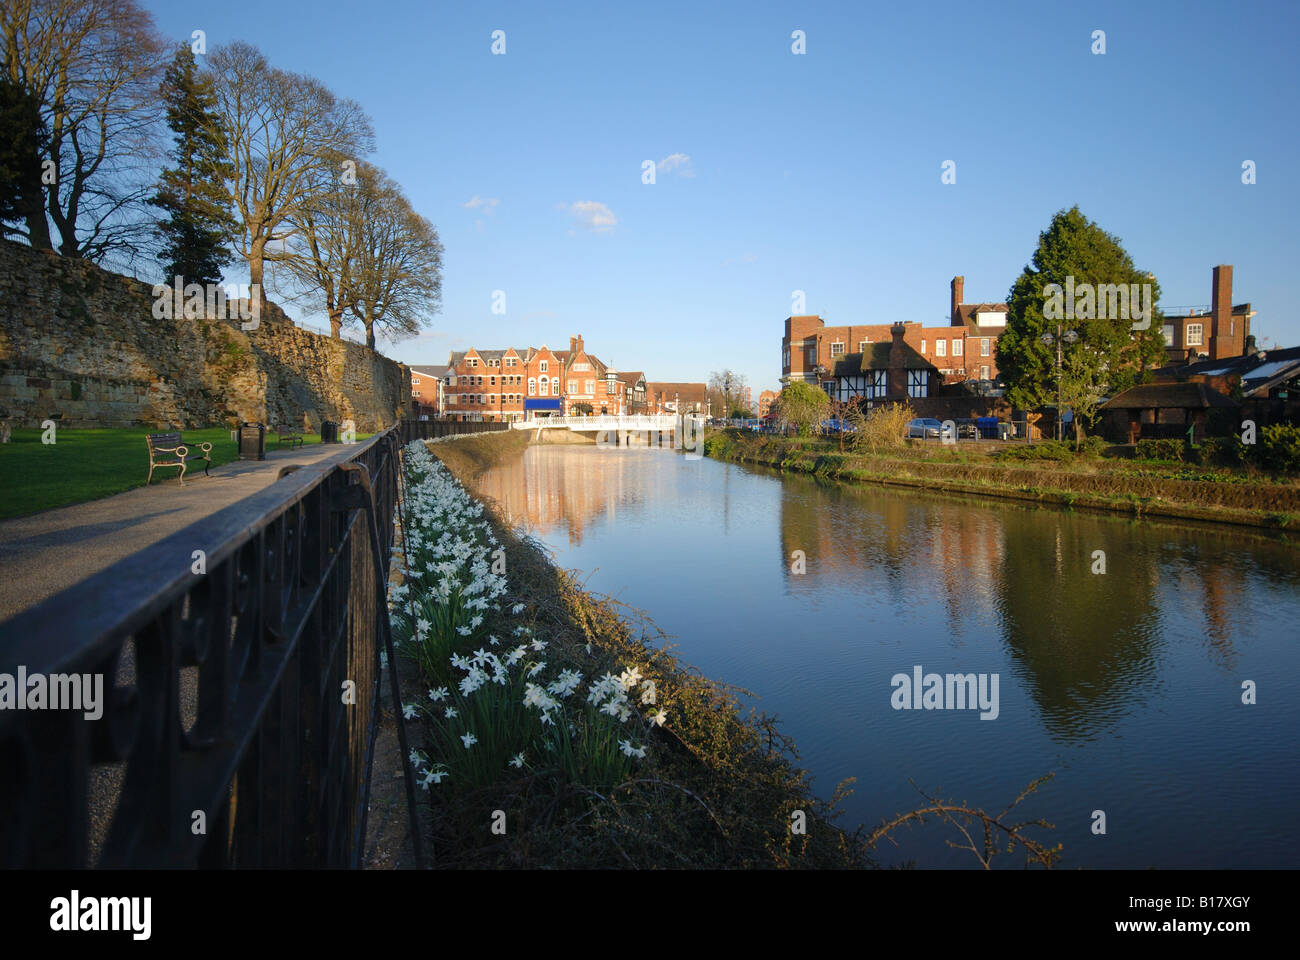 England, Kent,UK, view of Tonbridge Town with River Medway in foreground - Stock Image